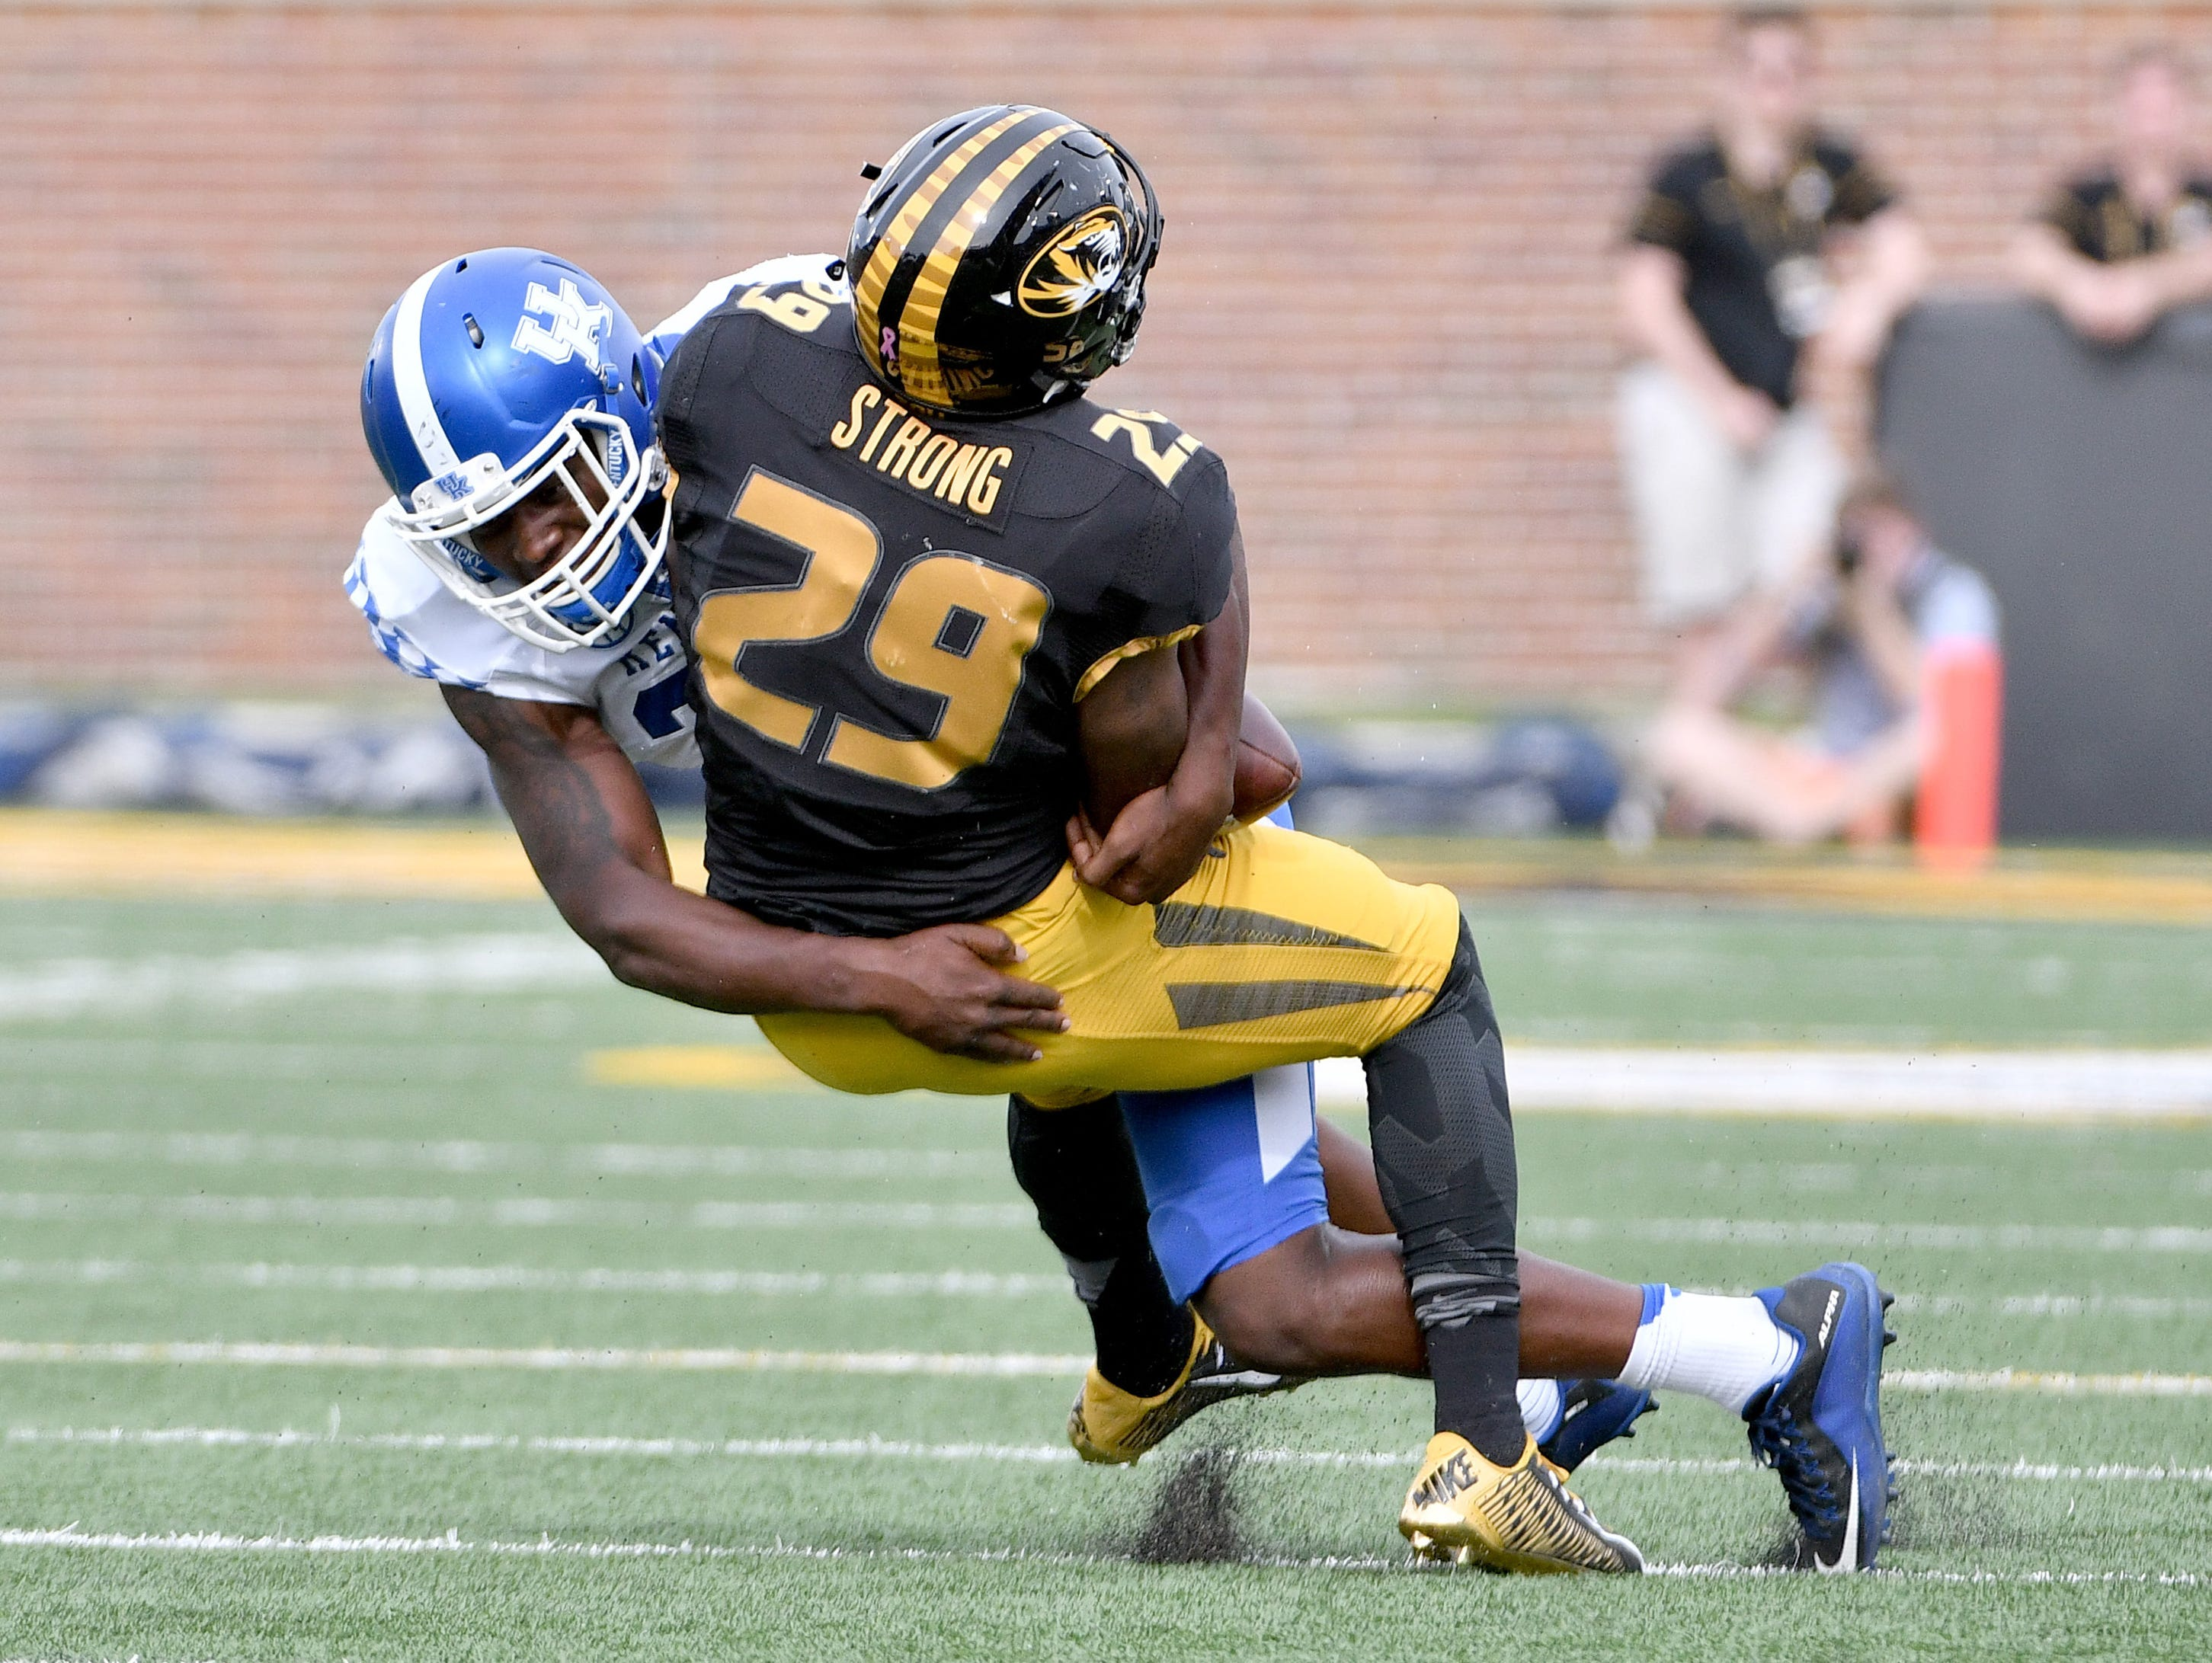 Oct 29, 2016; Columbia, MO, USA; Missouri Tigers running back Nate Strong (29) is tackled by Kentucky Wildcats linebacker Eli Brown (32) during the second half at Faurot Field. Kentucky won 35-21.